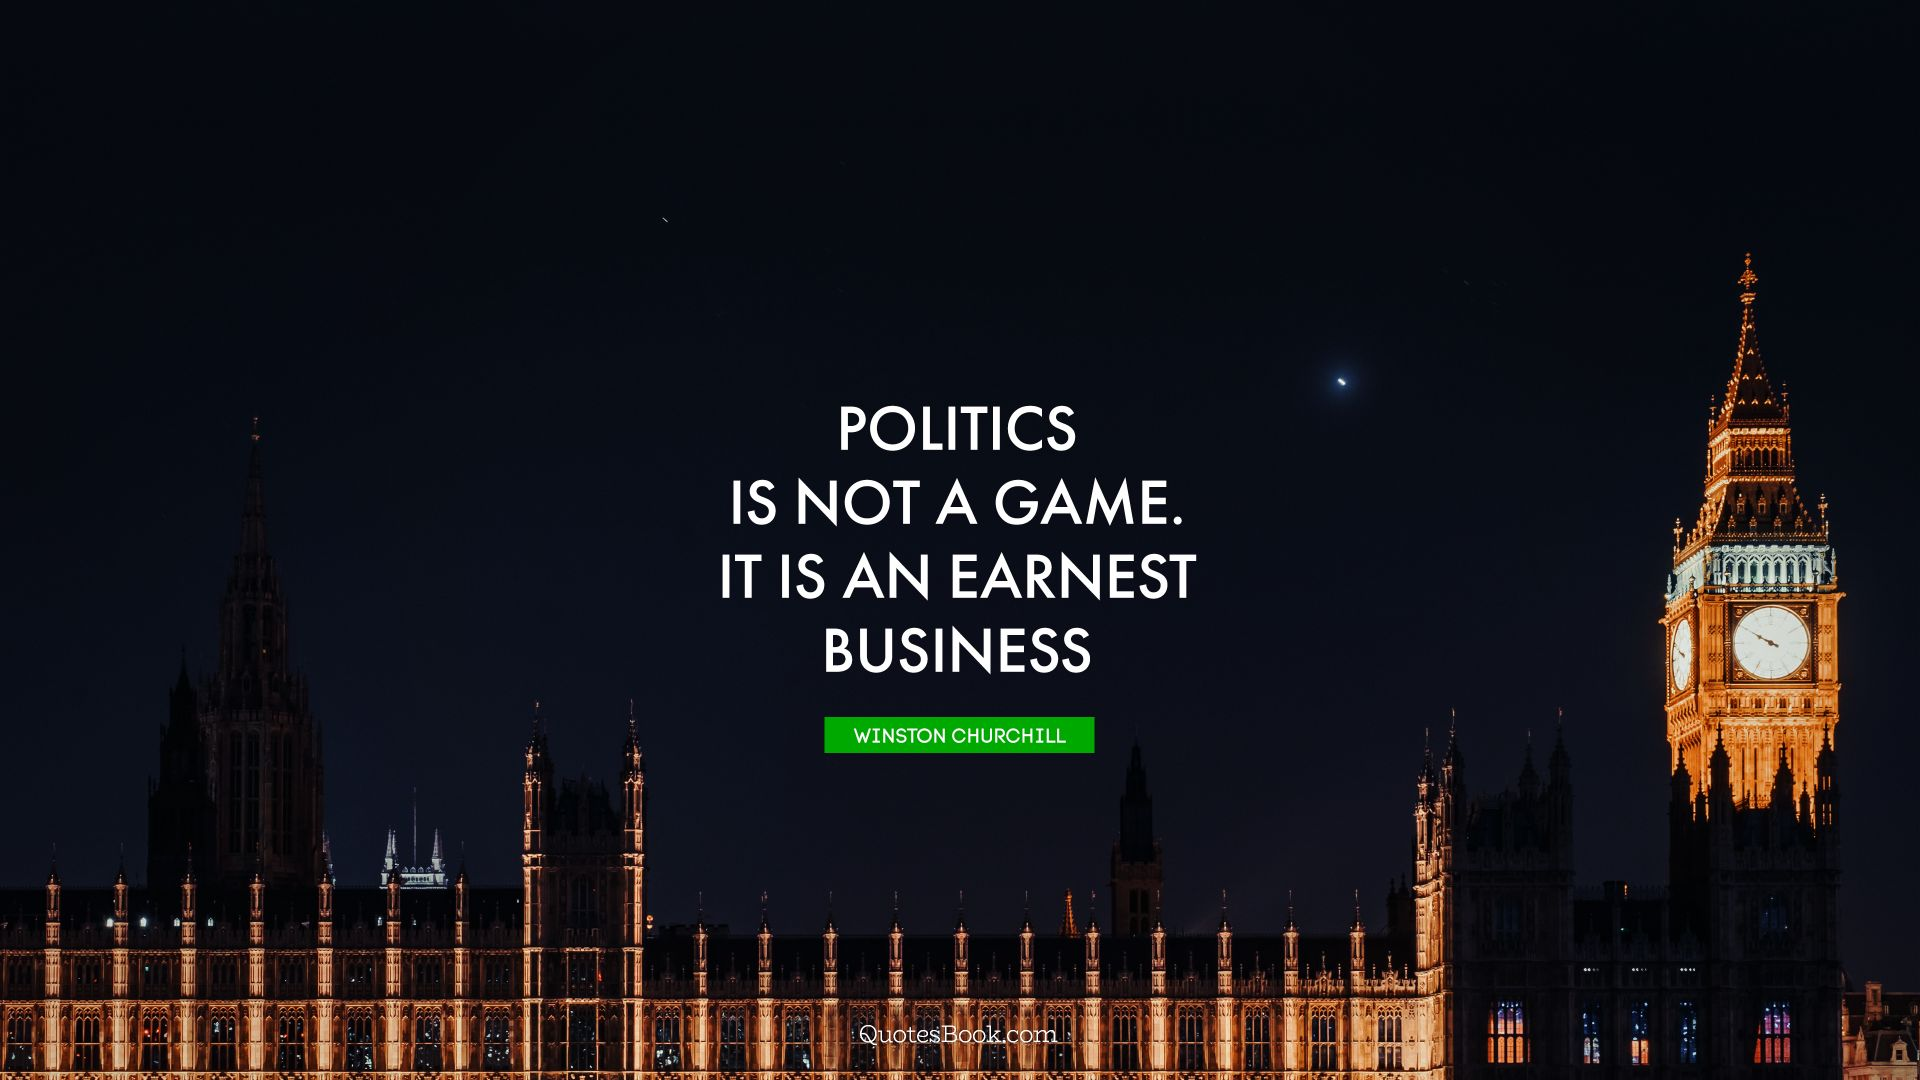 Politics is not a game. It is an earnest business. - Quote by Winston Churchill